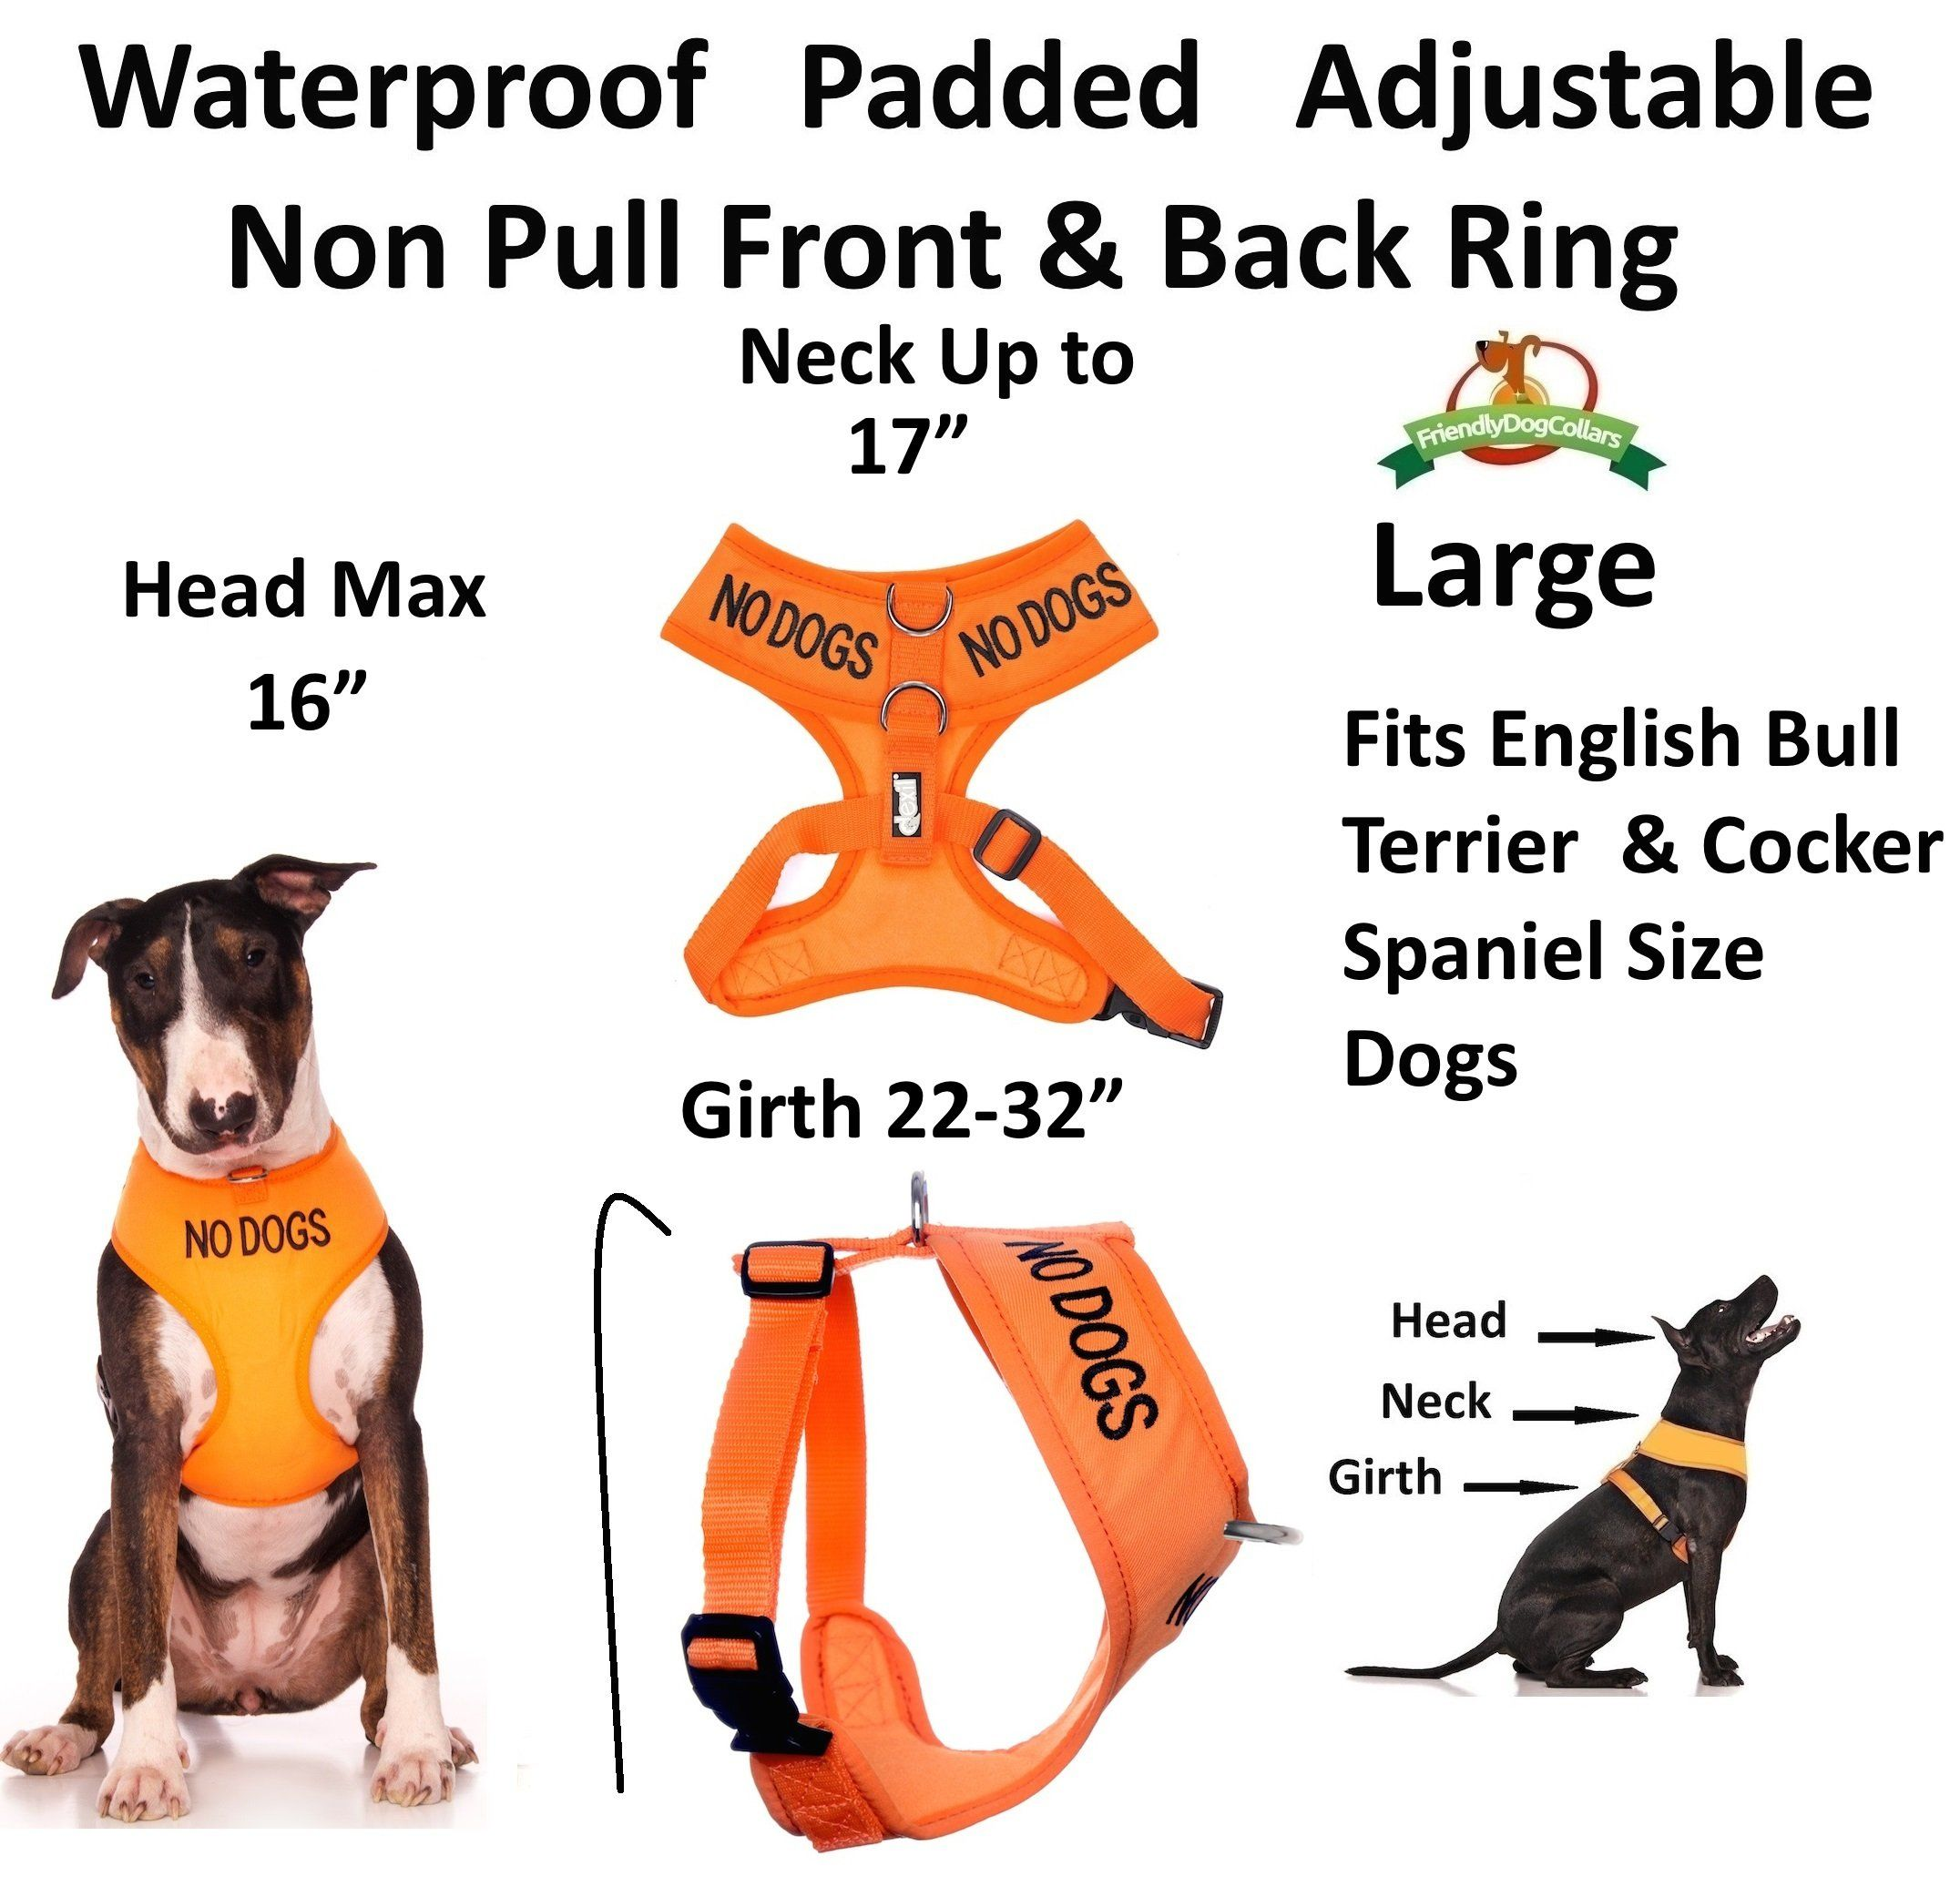 No Dogs Not Good With Other Dogs Orange Color Coded Nonpull Front